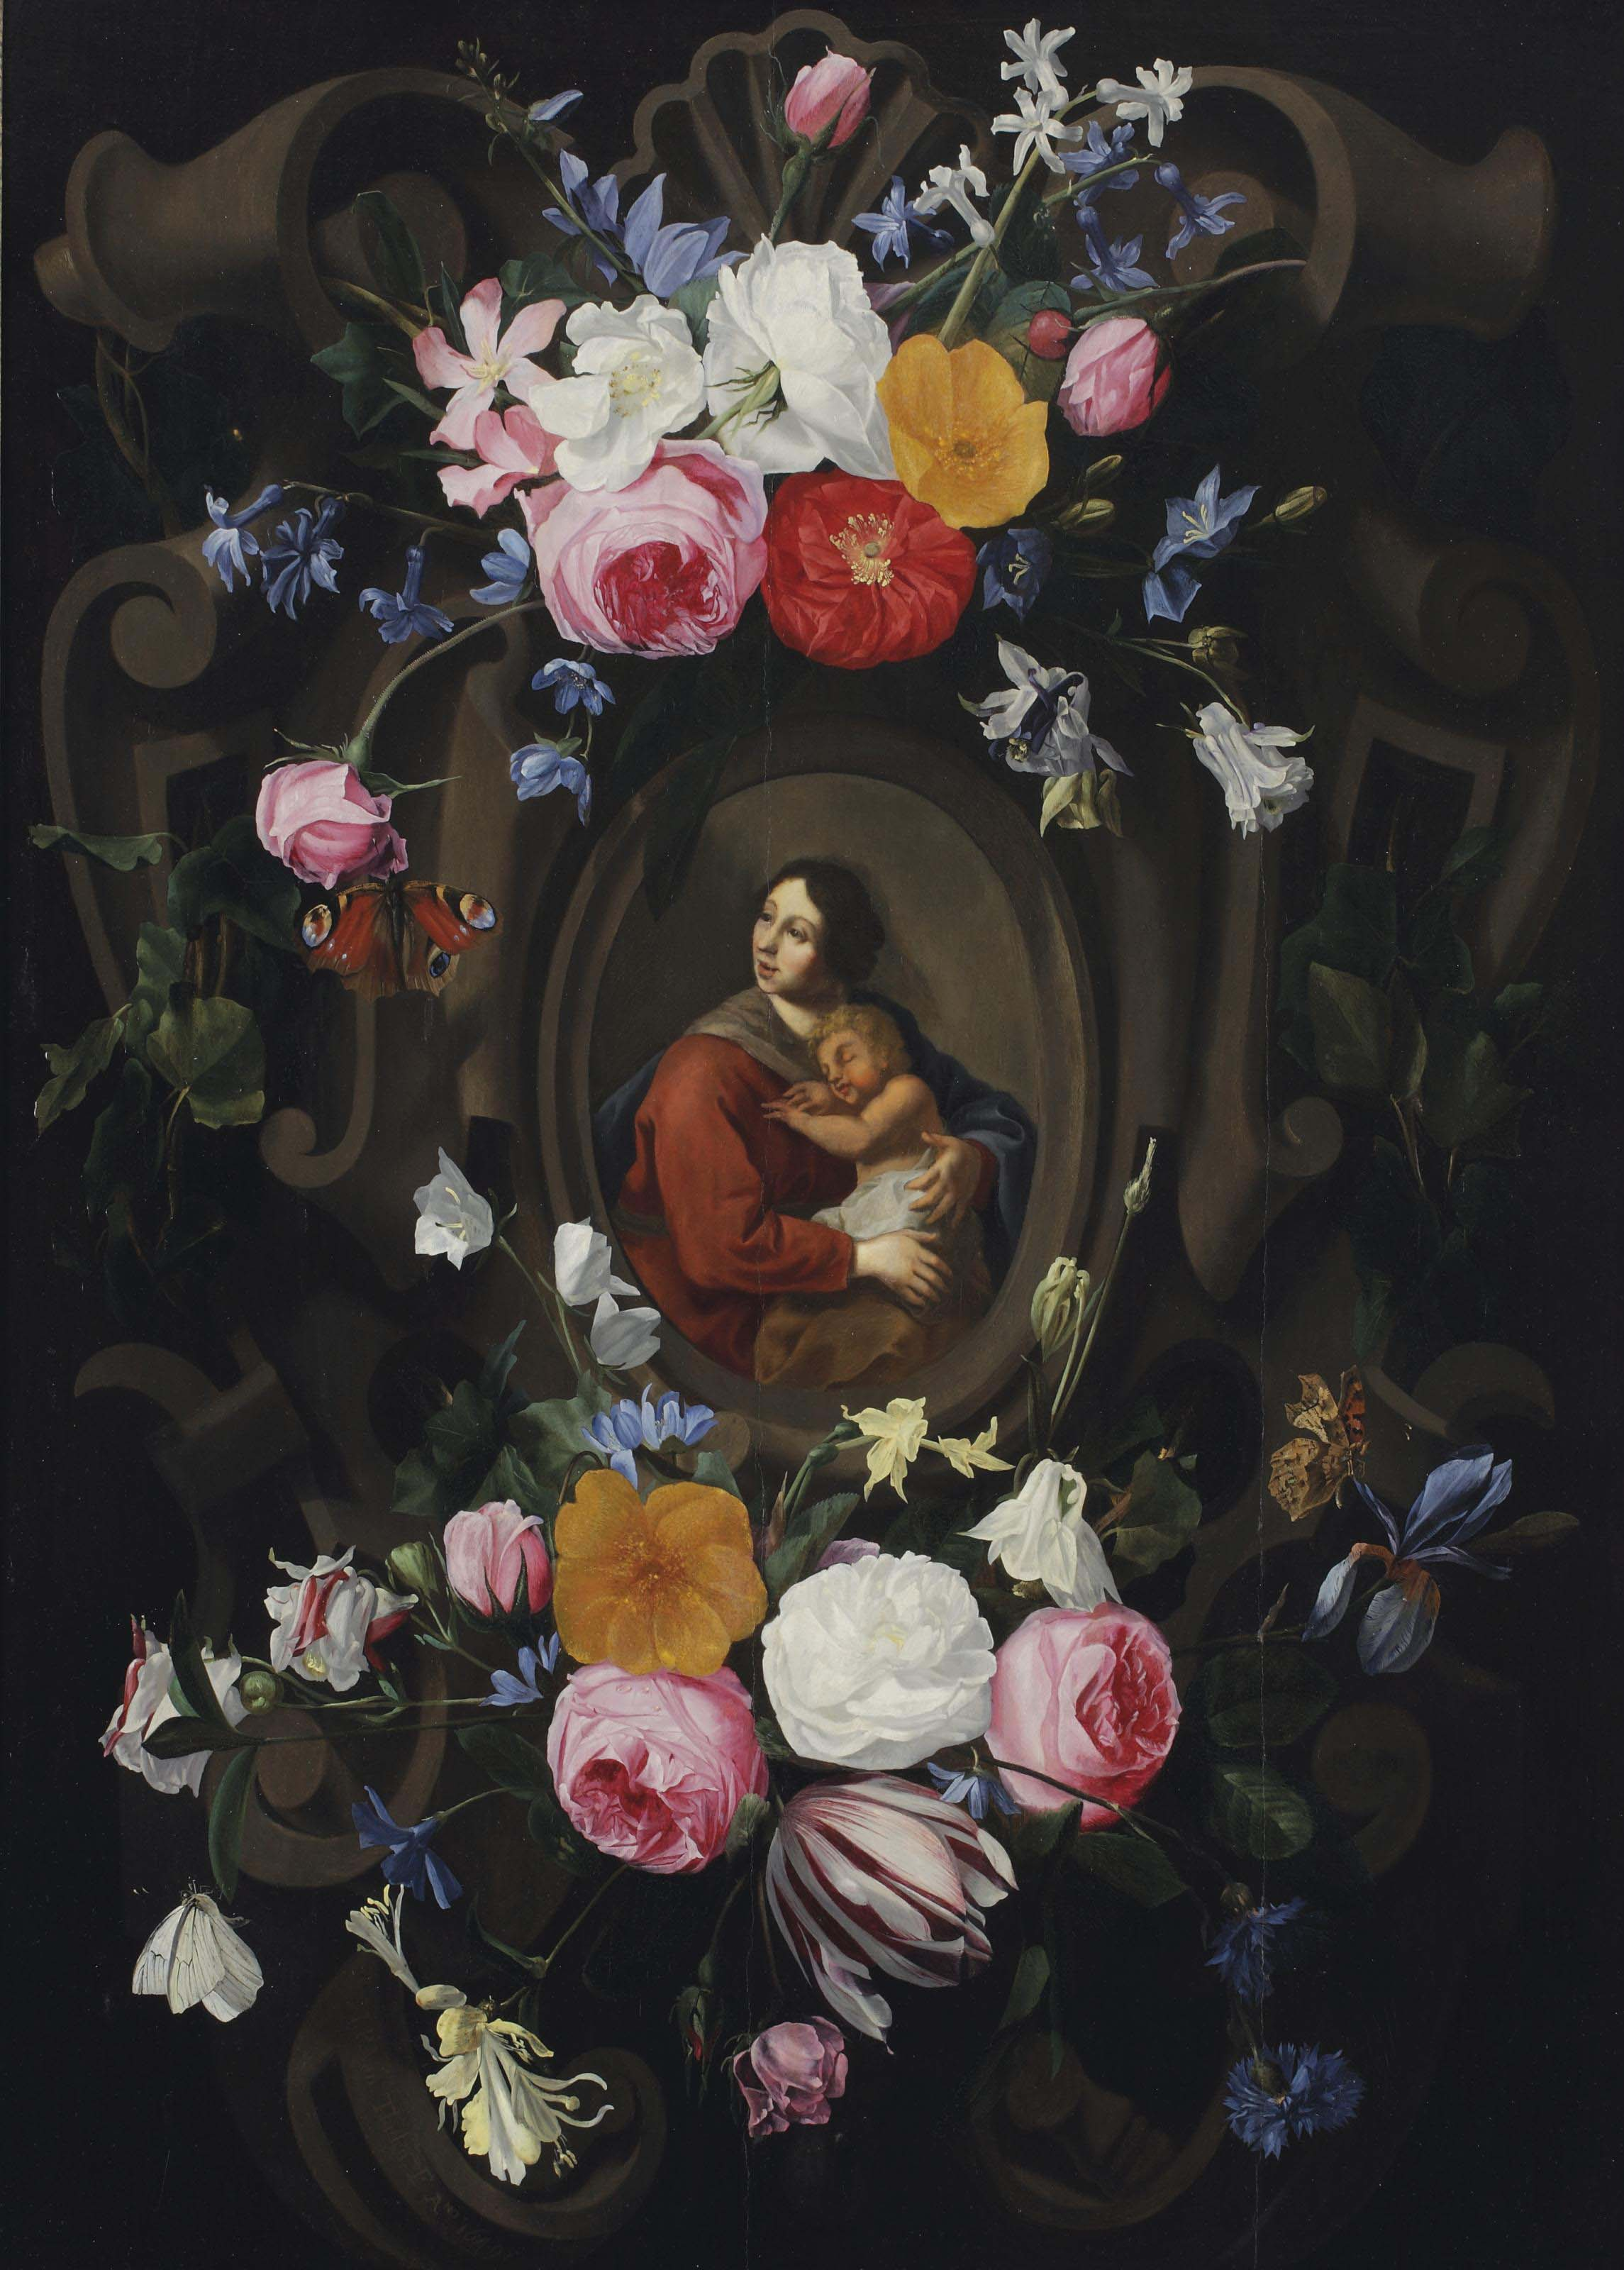 A stone cartouche with Mary and Child surrounded by floral garlands and butterflies